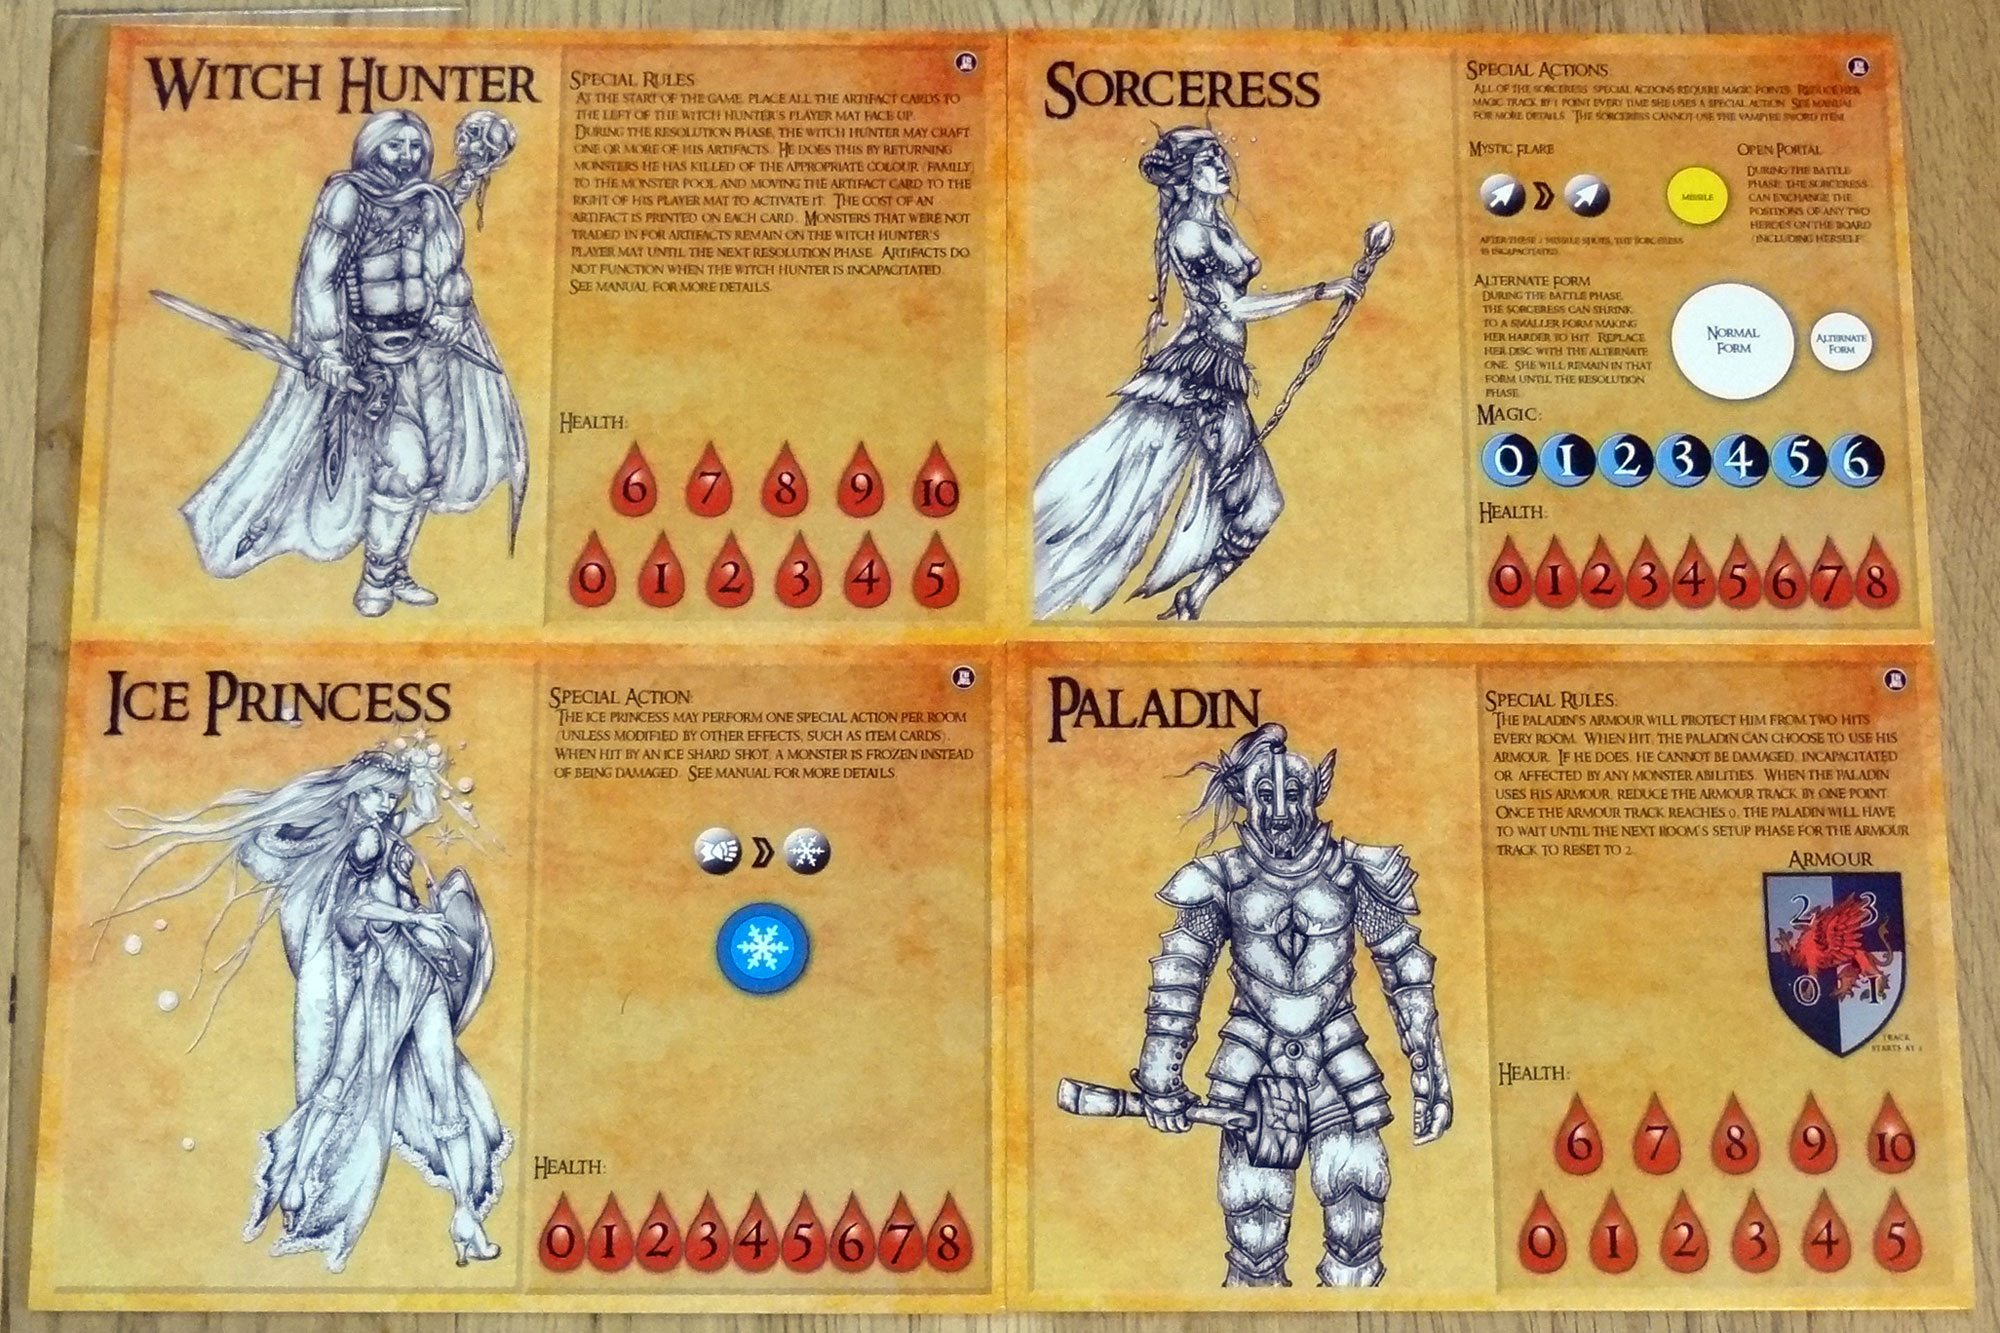 Caverns of Soloth heroes